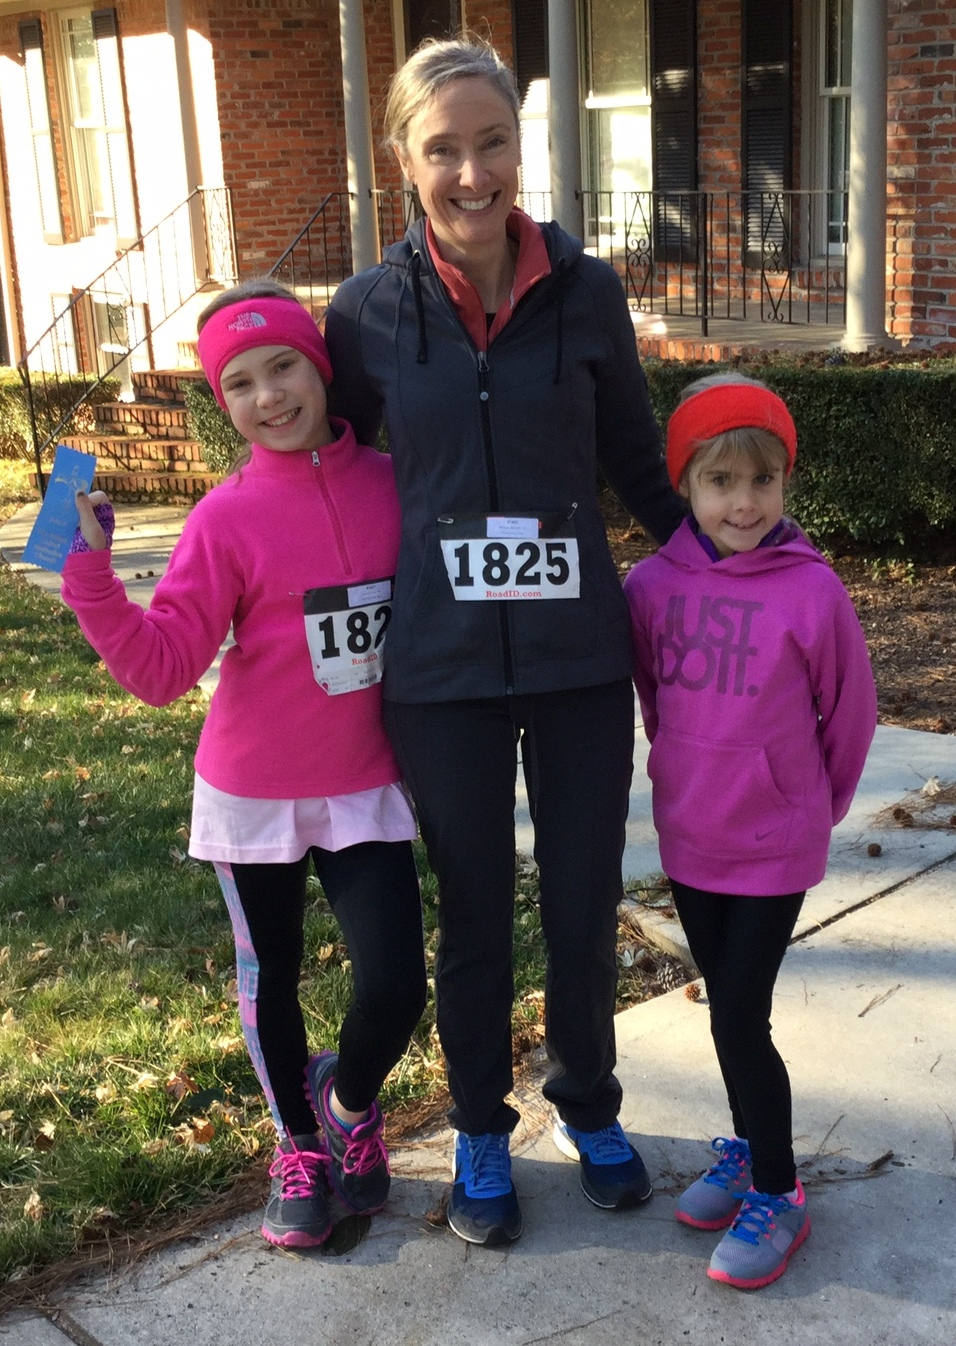 Photo taken on 2/14/15 after running a 5k as a family